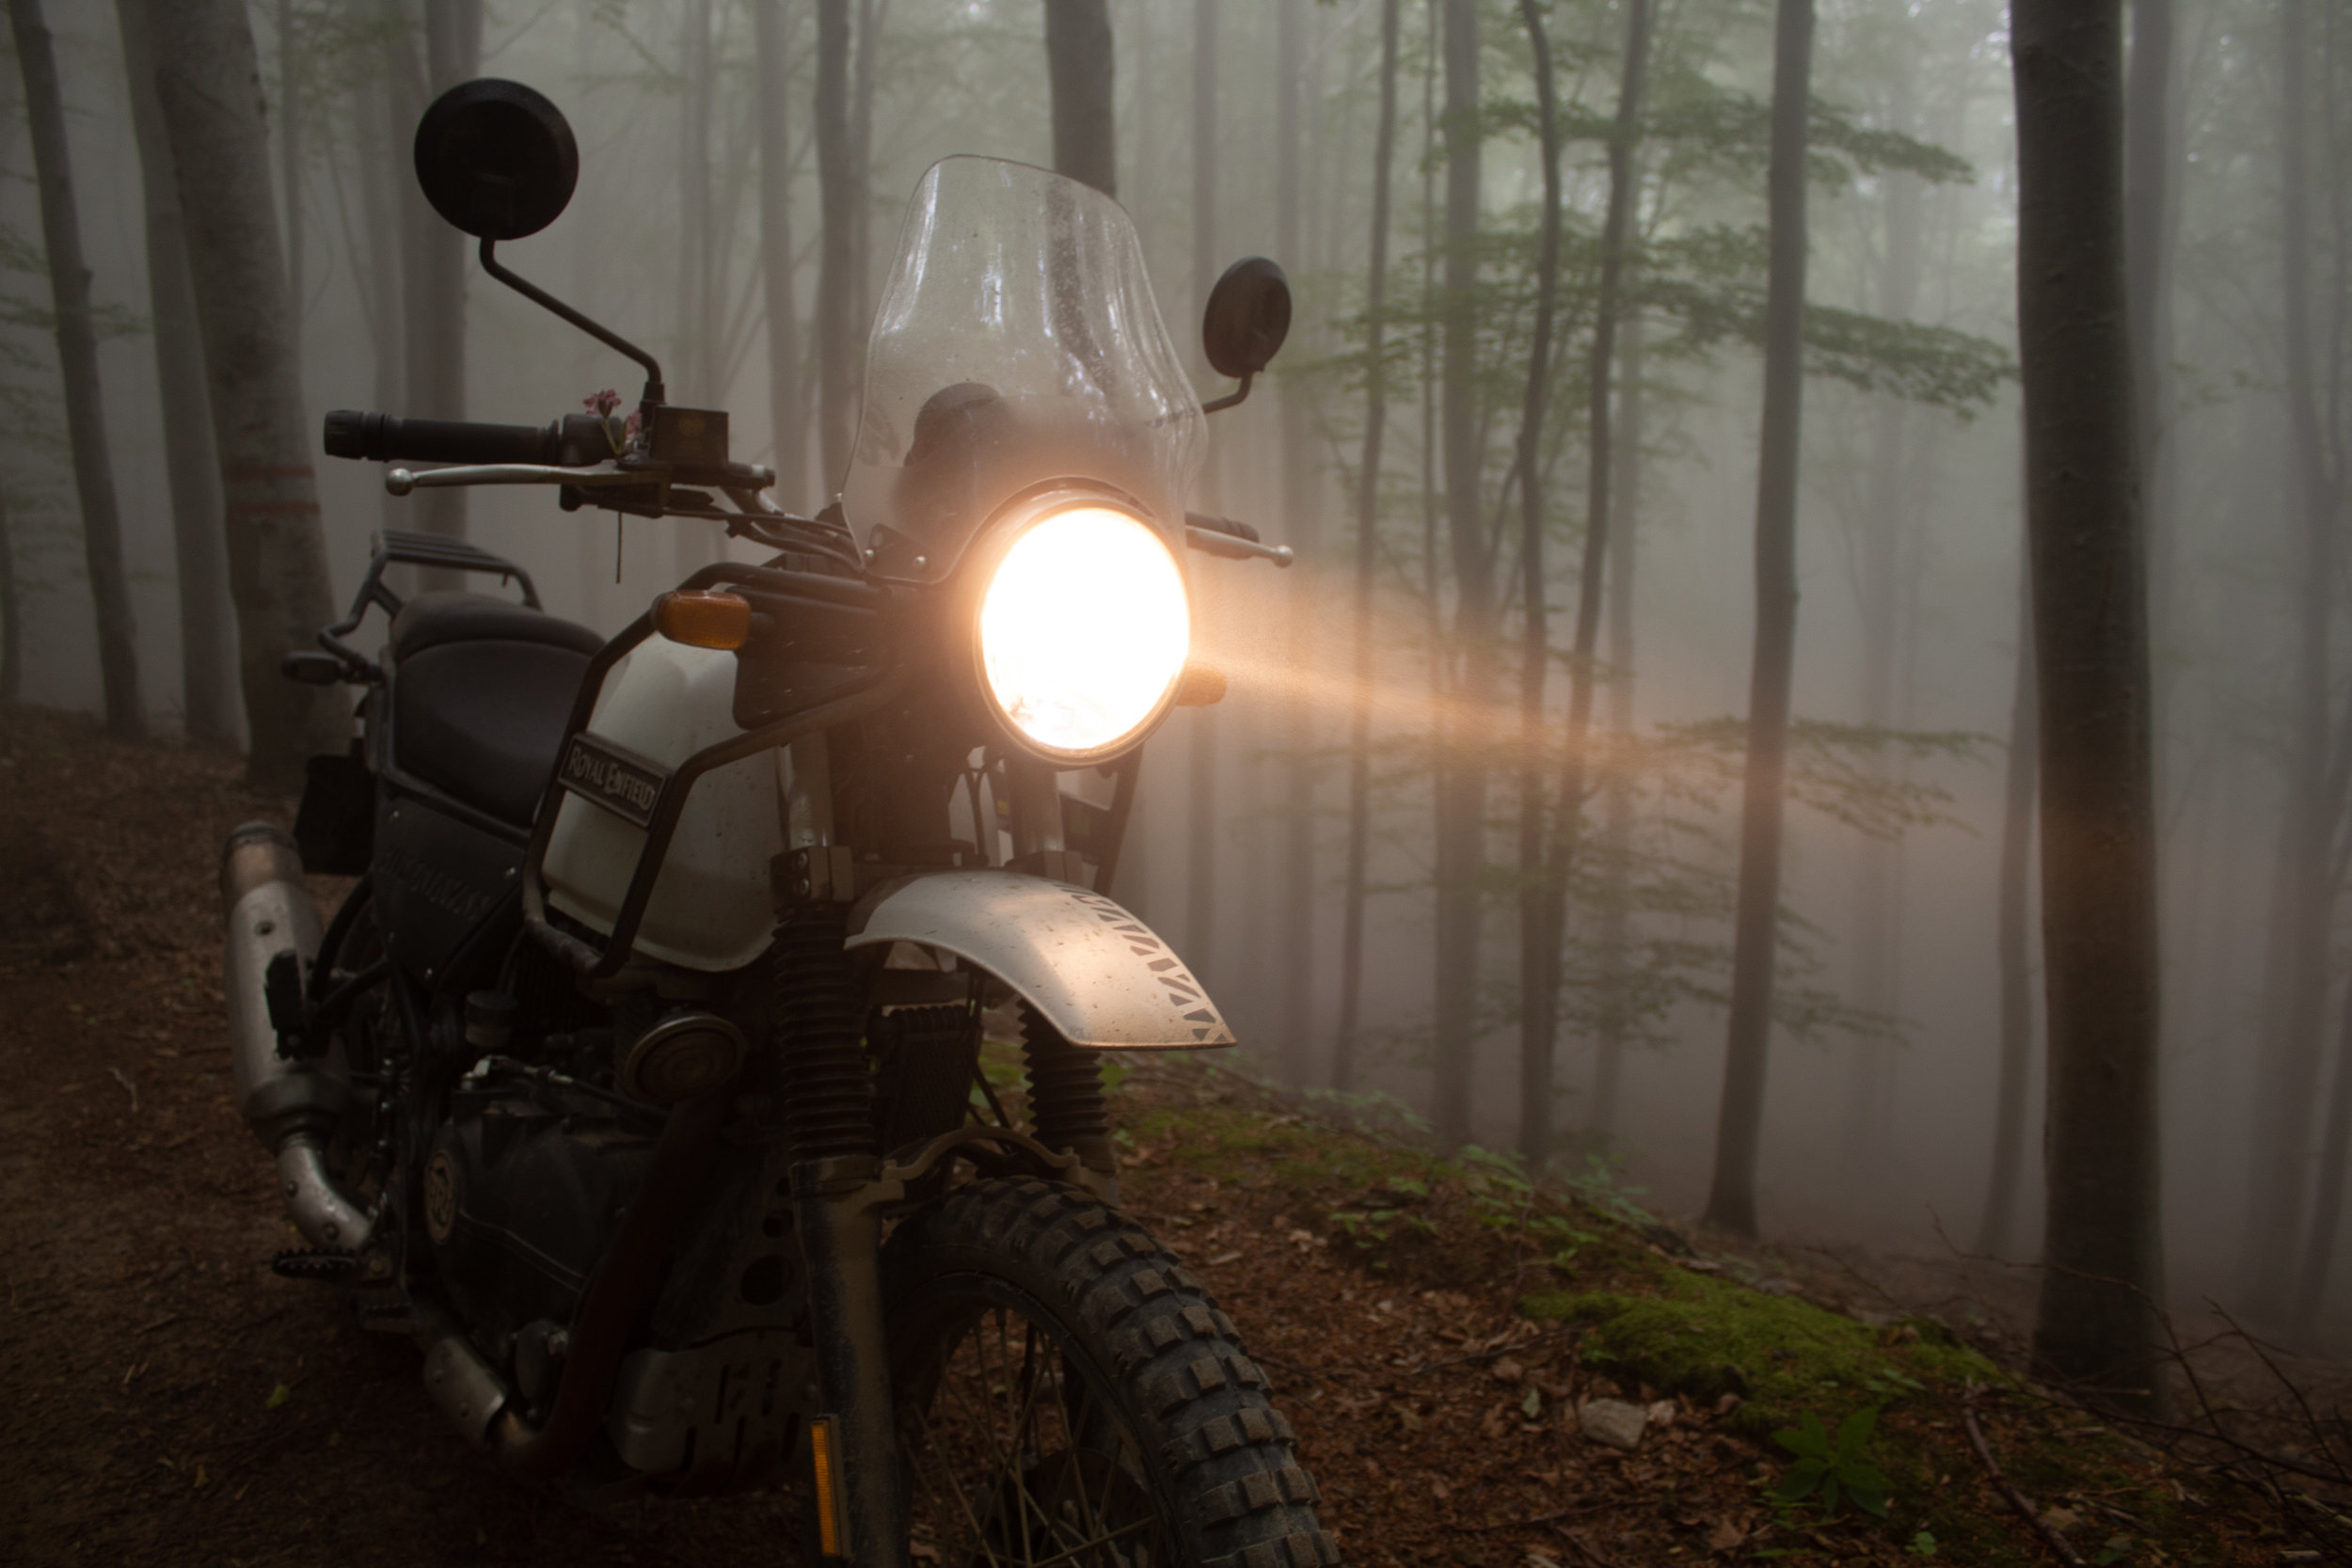 Royal Enfield Himalayan has great lights to cut through the fog